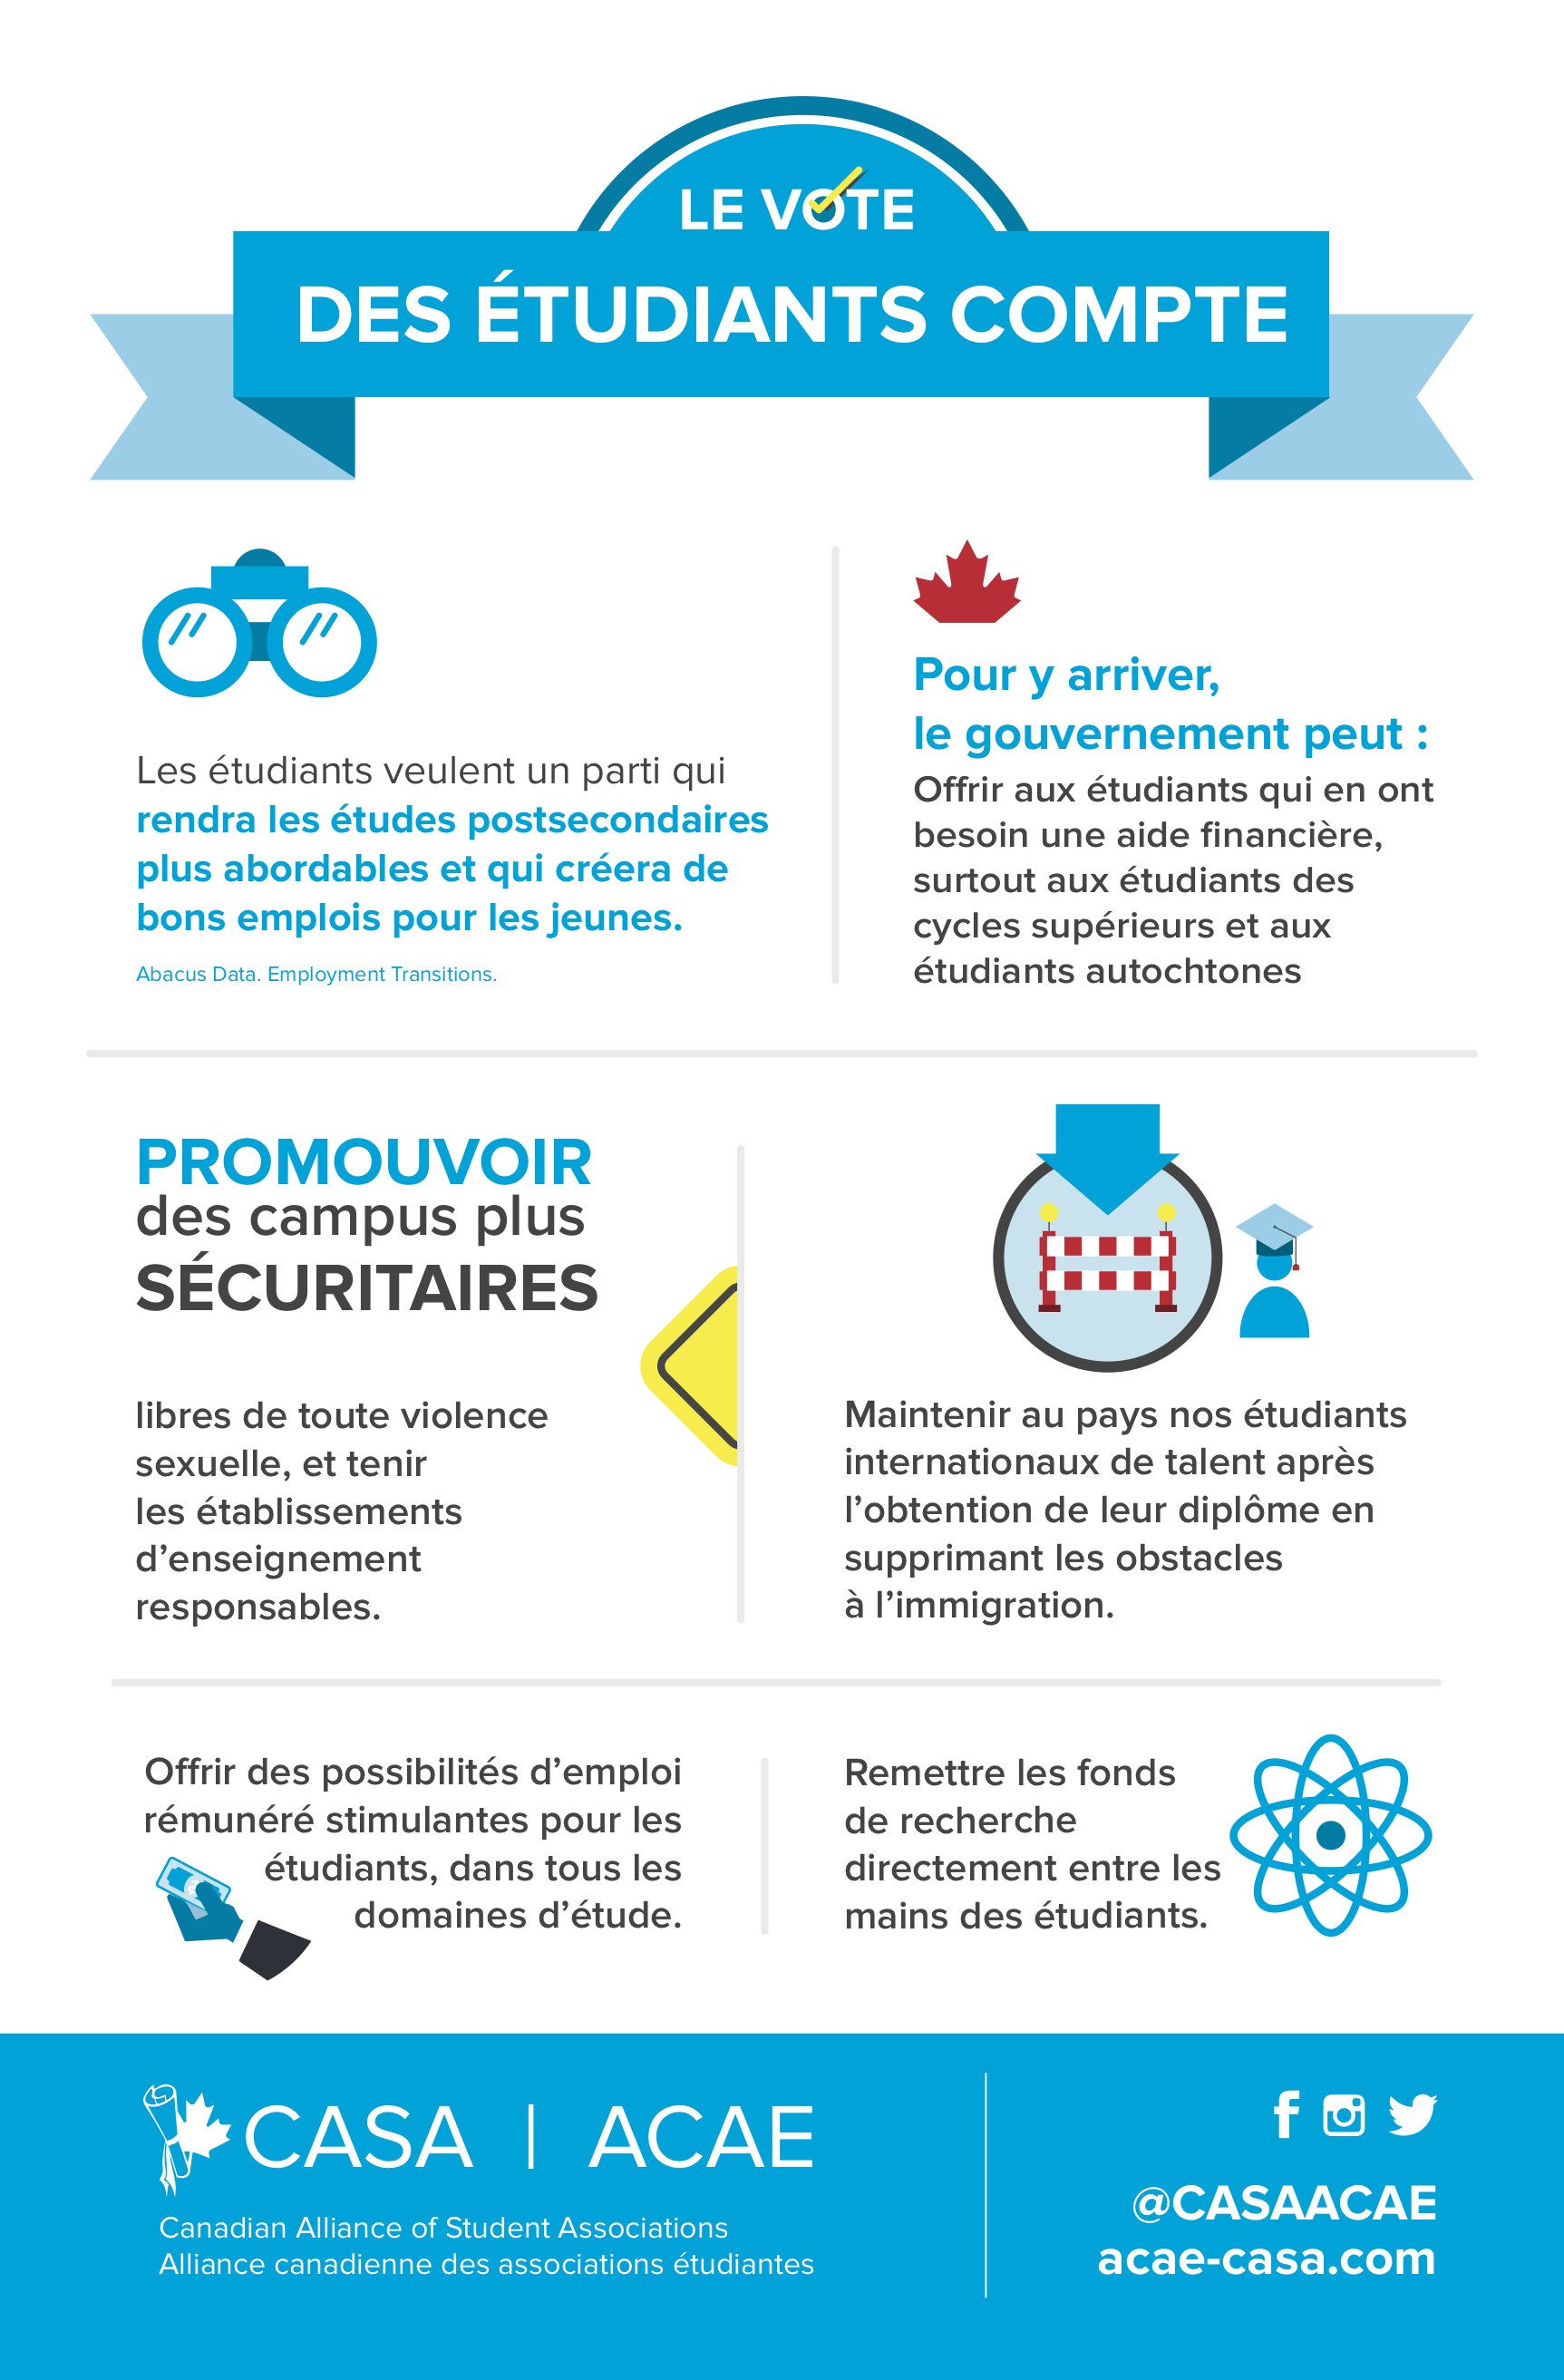 students-vote-infographic-final-french2.jpg